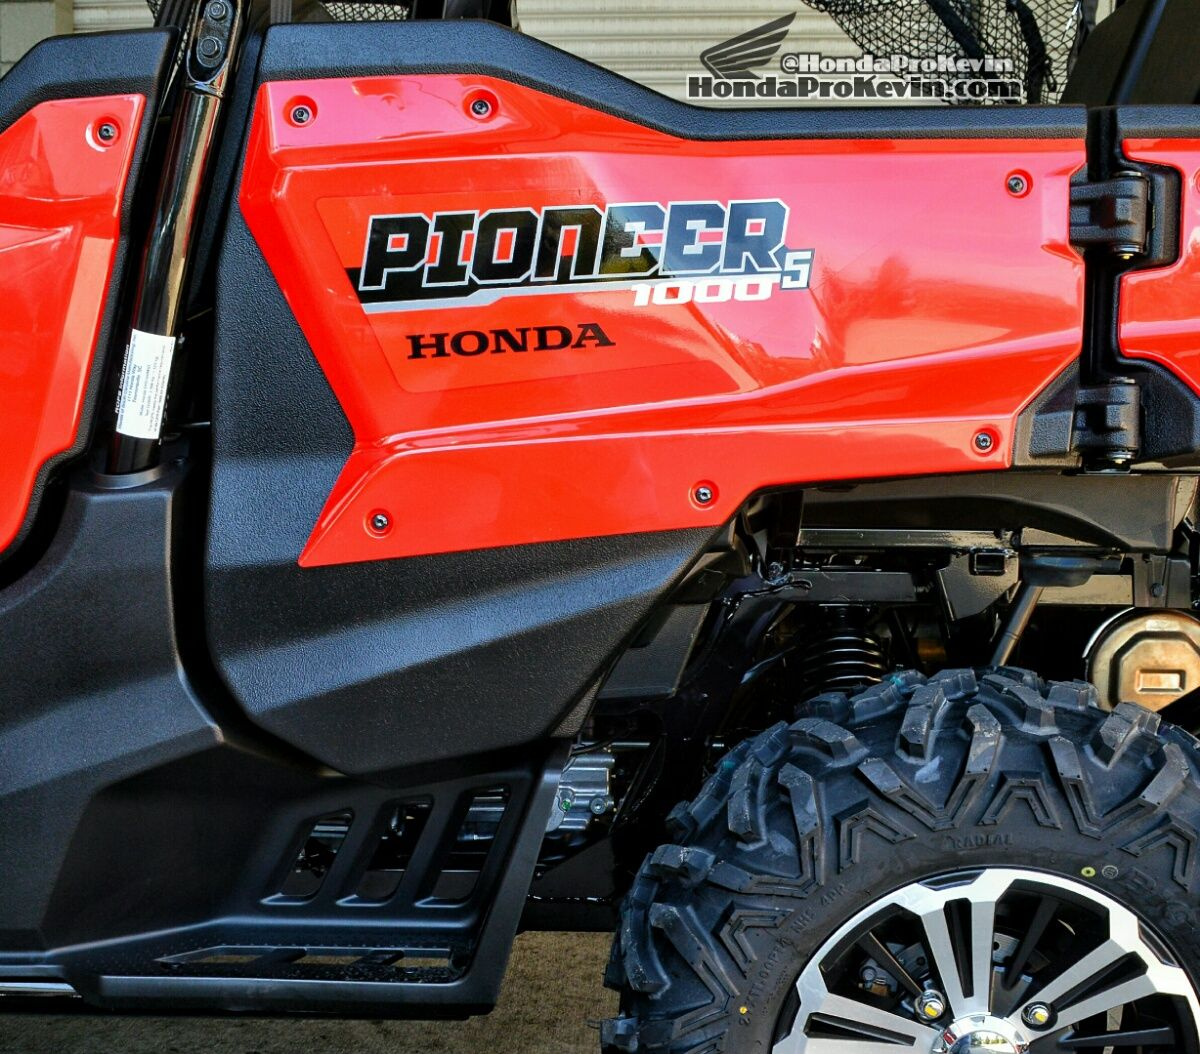 2016 honda sport utv side by side 1000 cc atv sxs utility vehicle first drive review check out if the new pioneer 1000 5 deluxe pictured her